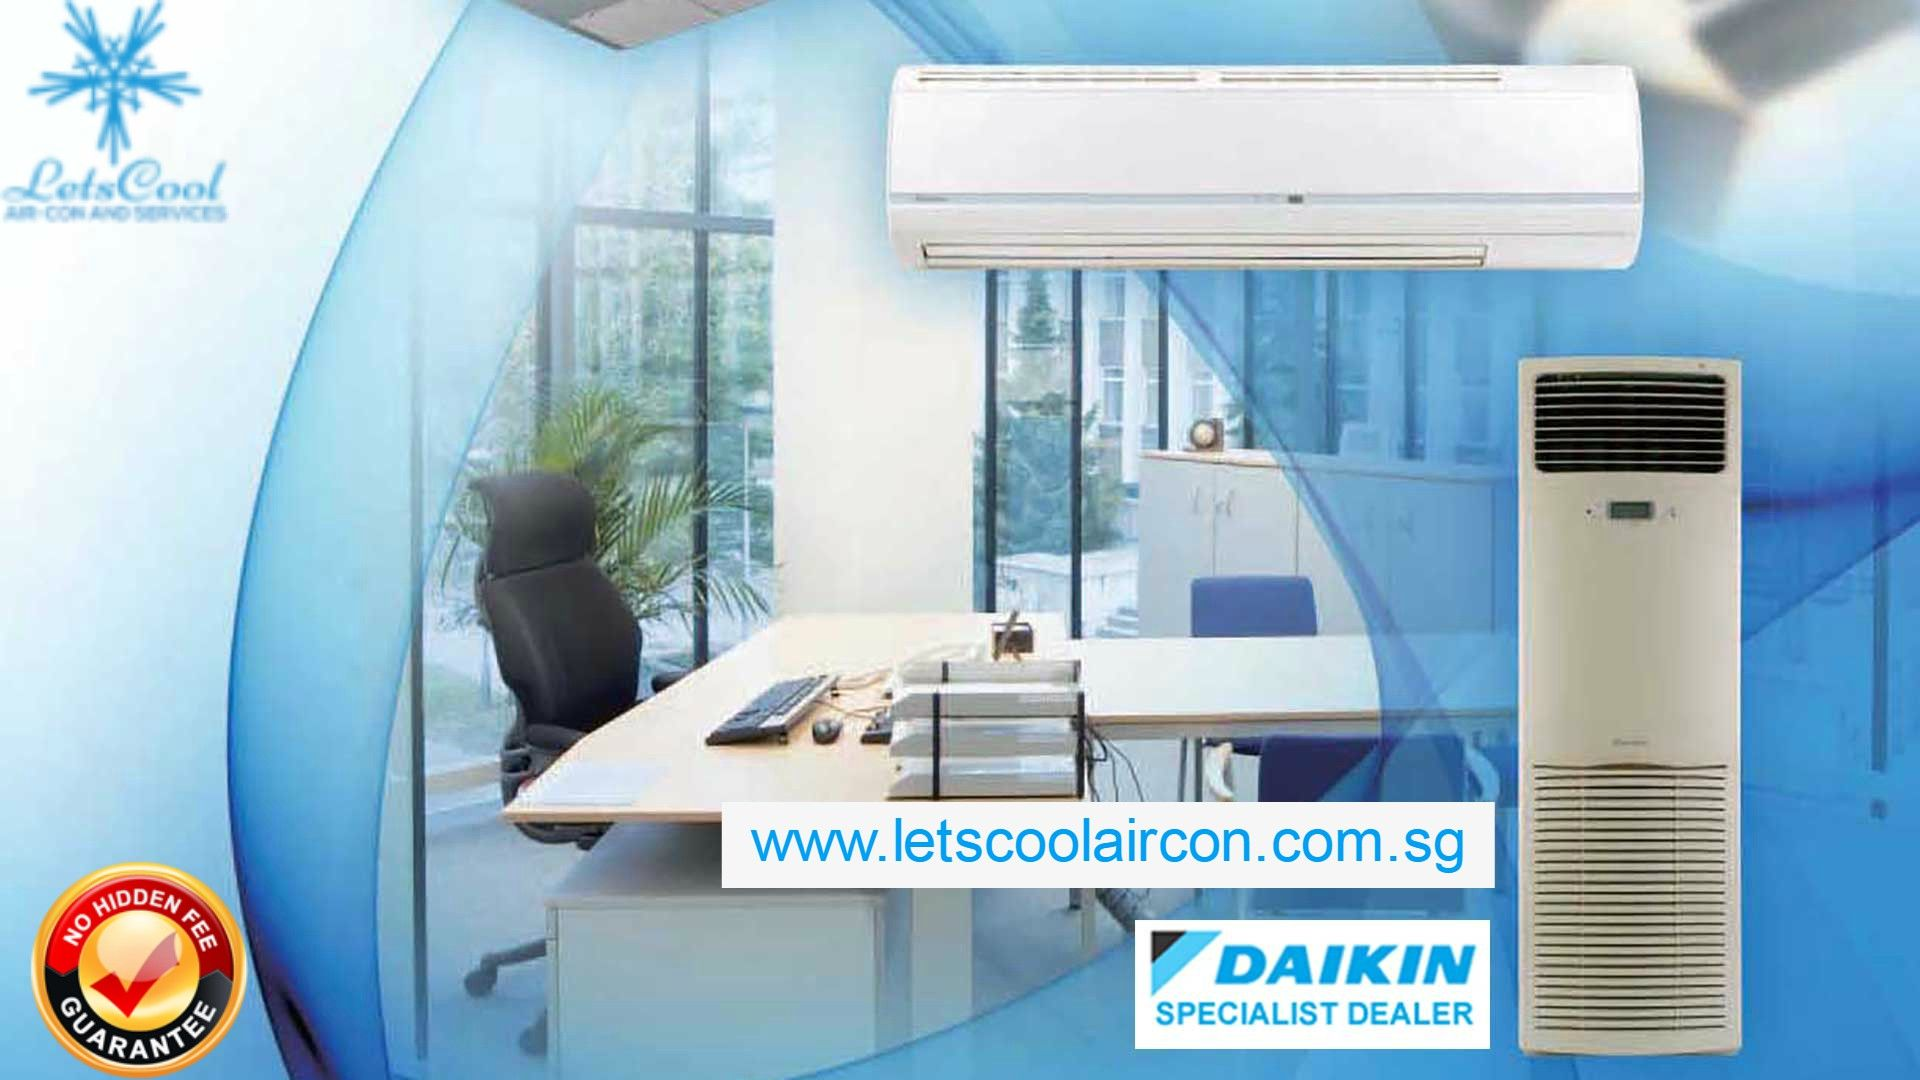 Air Conditioner Repair Service Singapore Aircon Servicing Aircon Aircon Repair Air Conditioner Repair